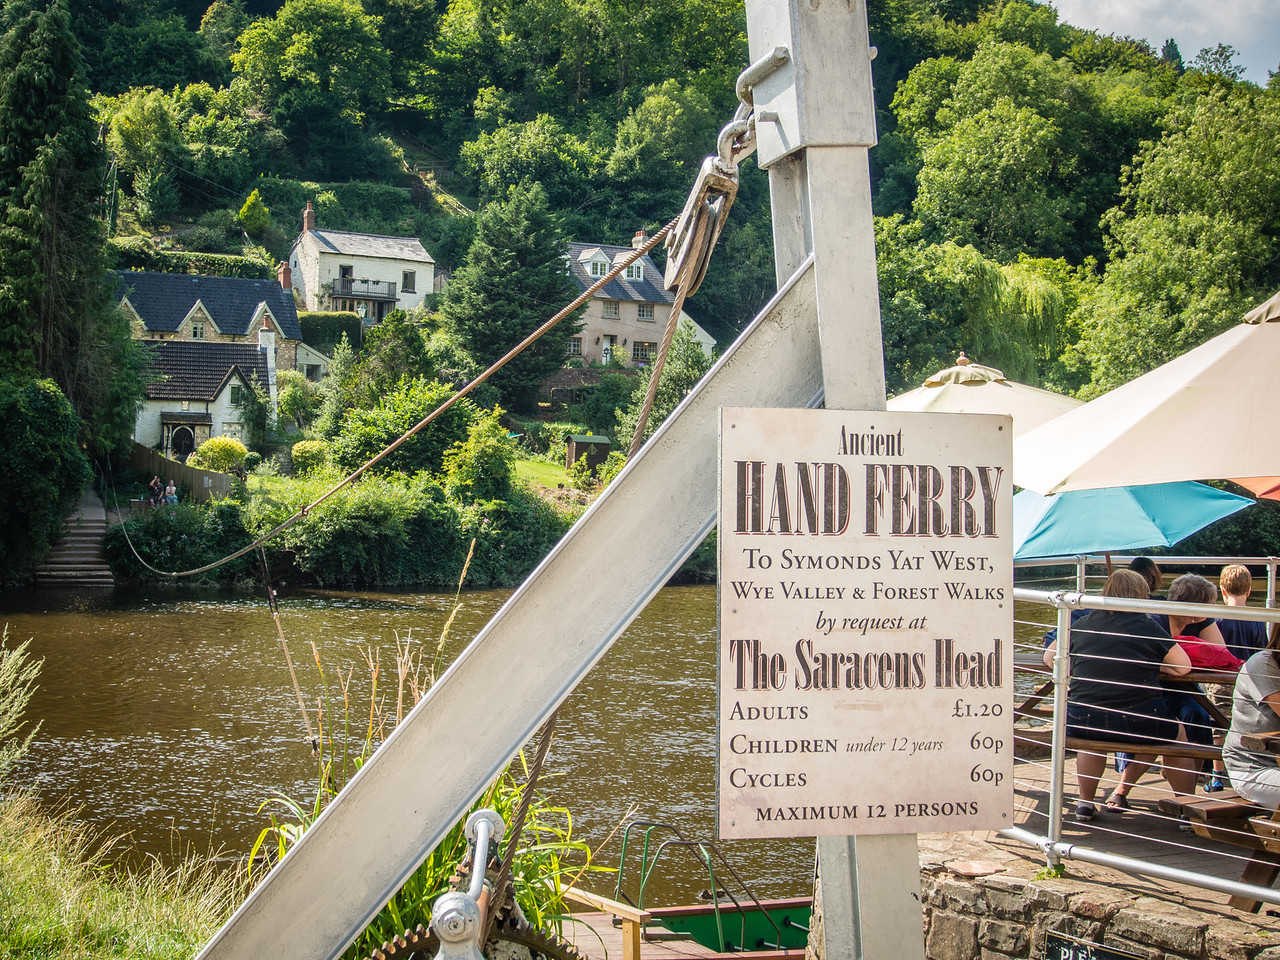 Hand Ferry over the River